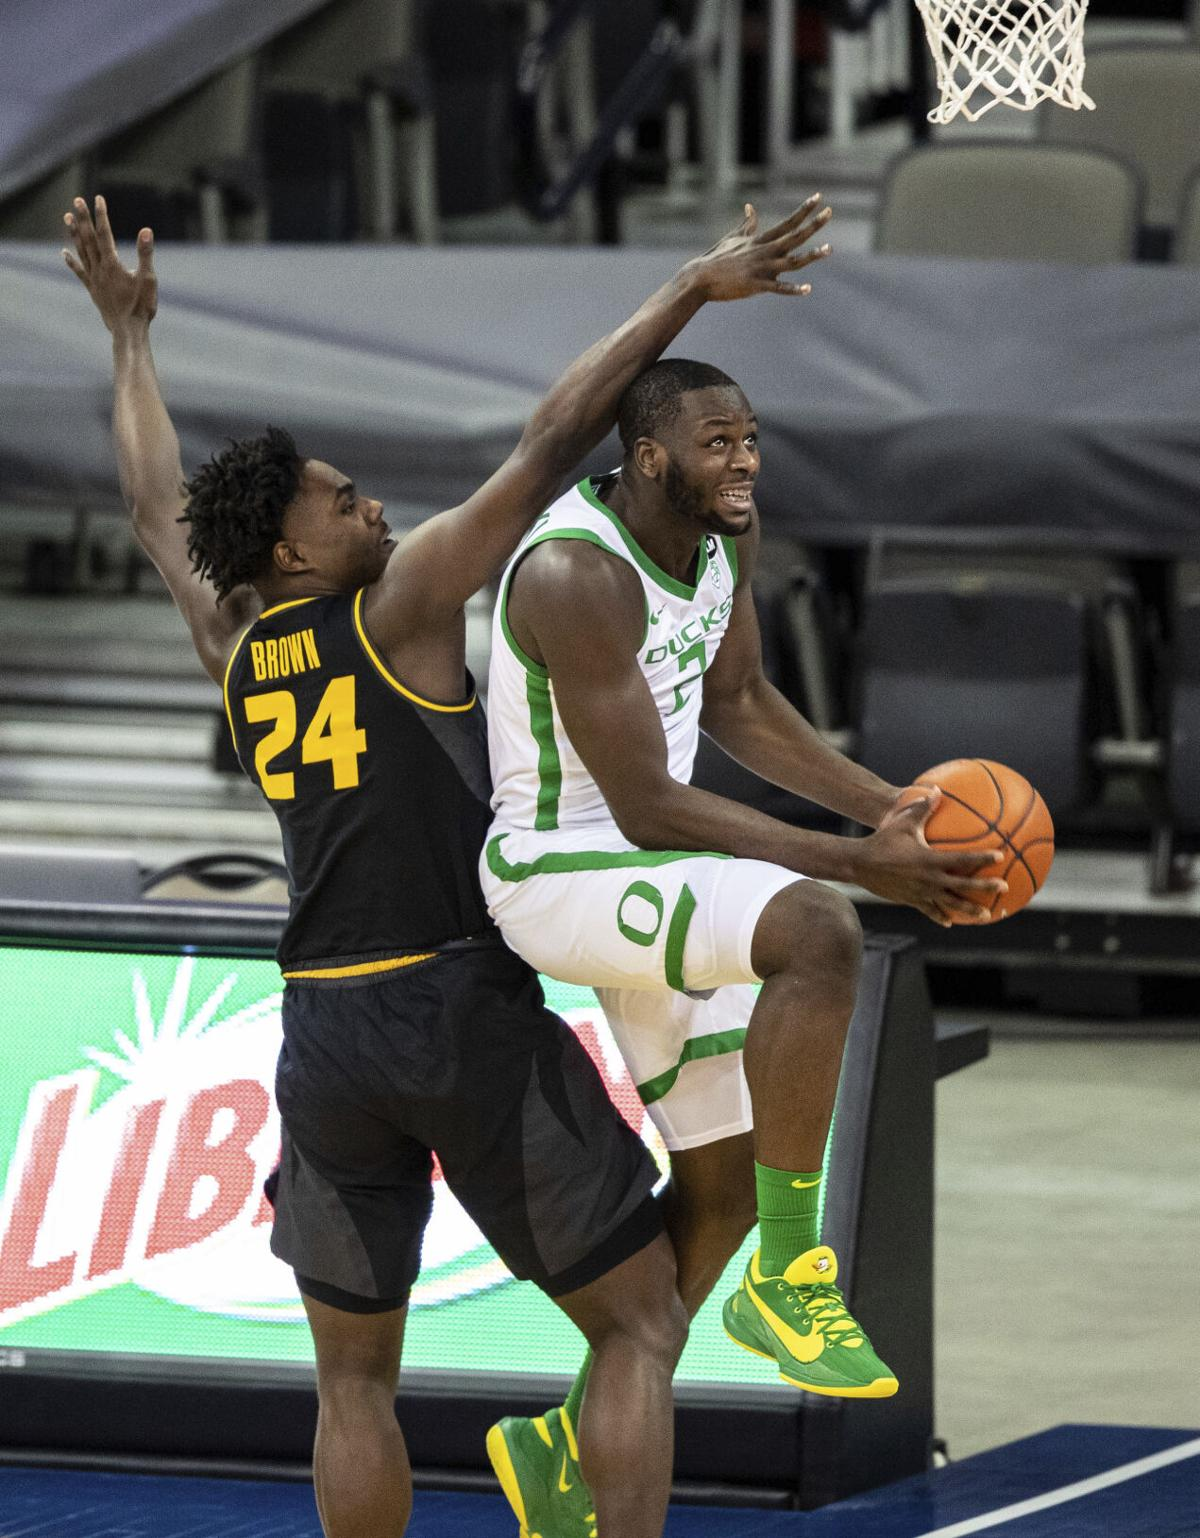 Missouri's Kobe Brown (24) fouls Oregon's Eugene Omoruyi during an NCAA college basketball game, Wednesday, Dec. 2, 2020 in Omaha, Neb.